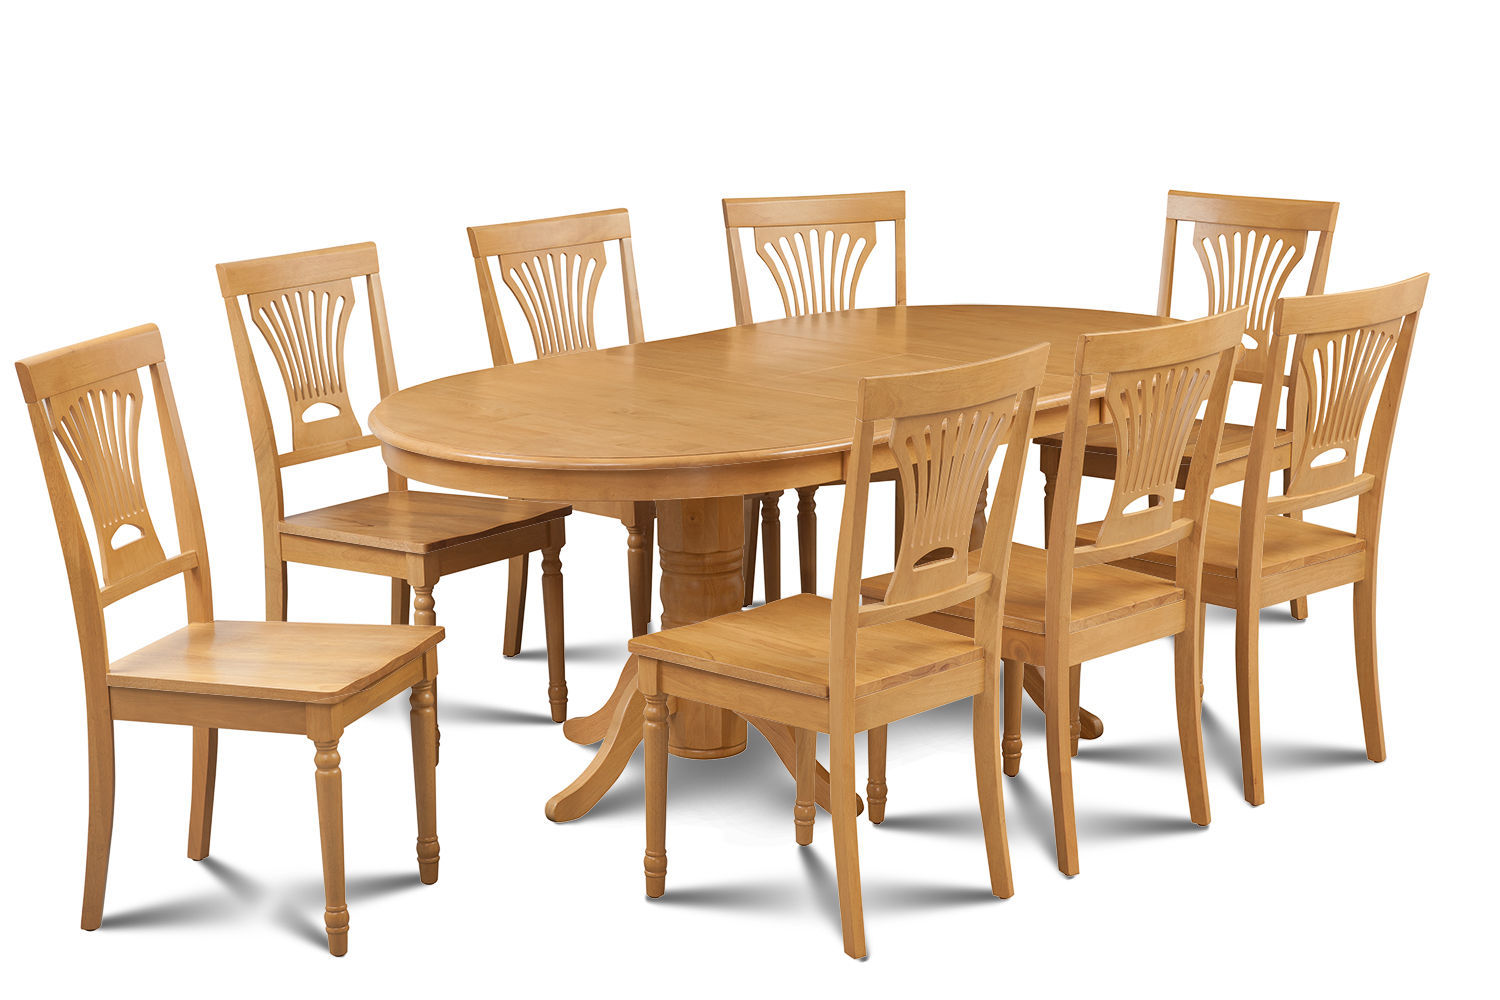 9 PIECE OVAL DINING ROOM TABLE SET w/ 8 WOODEN CHAIRS IN OAK FINISH